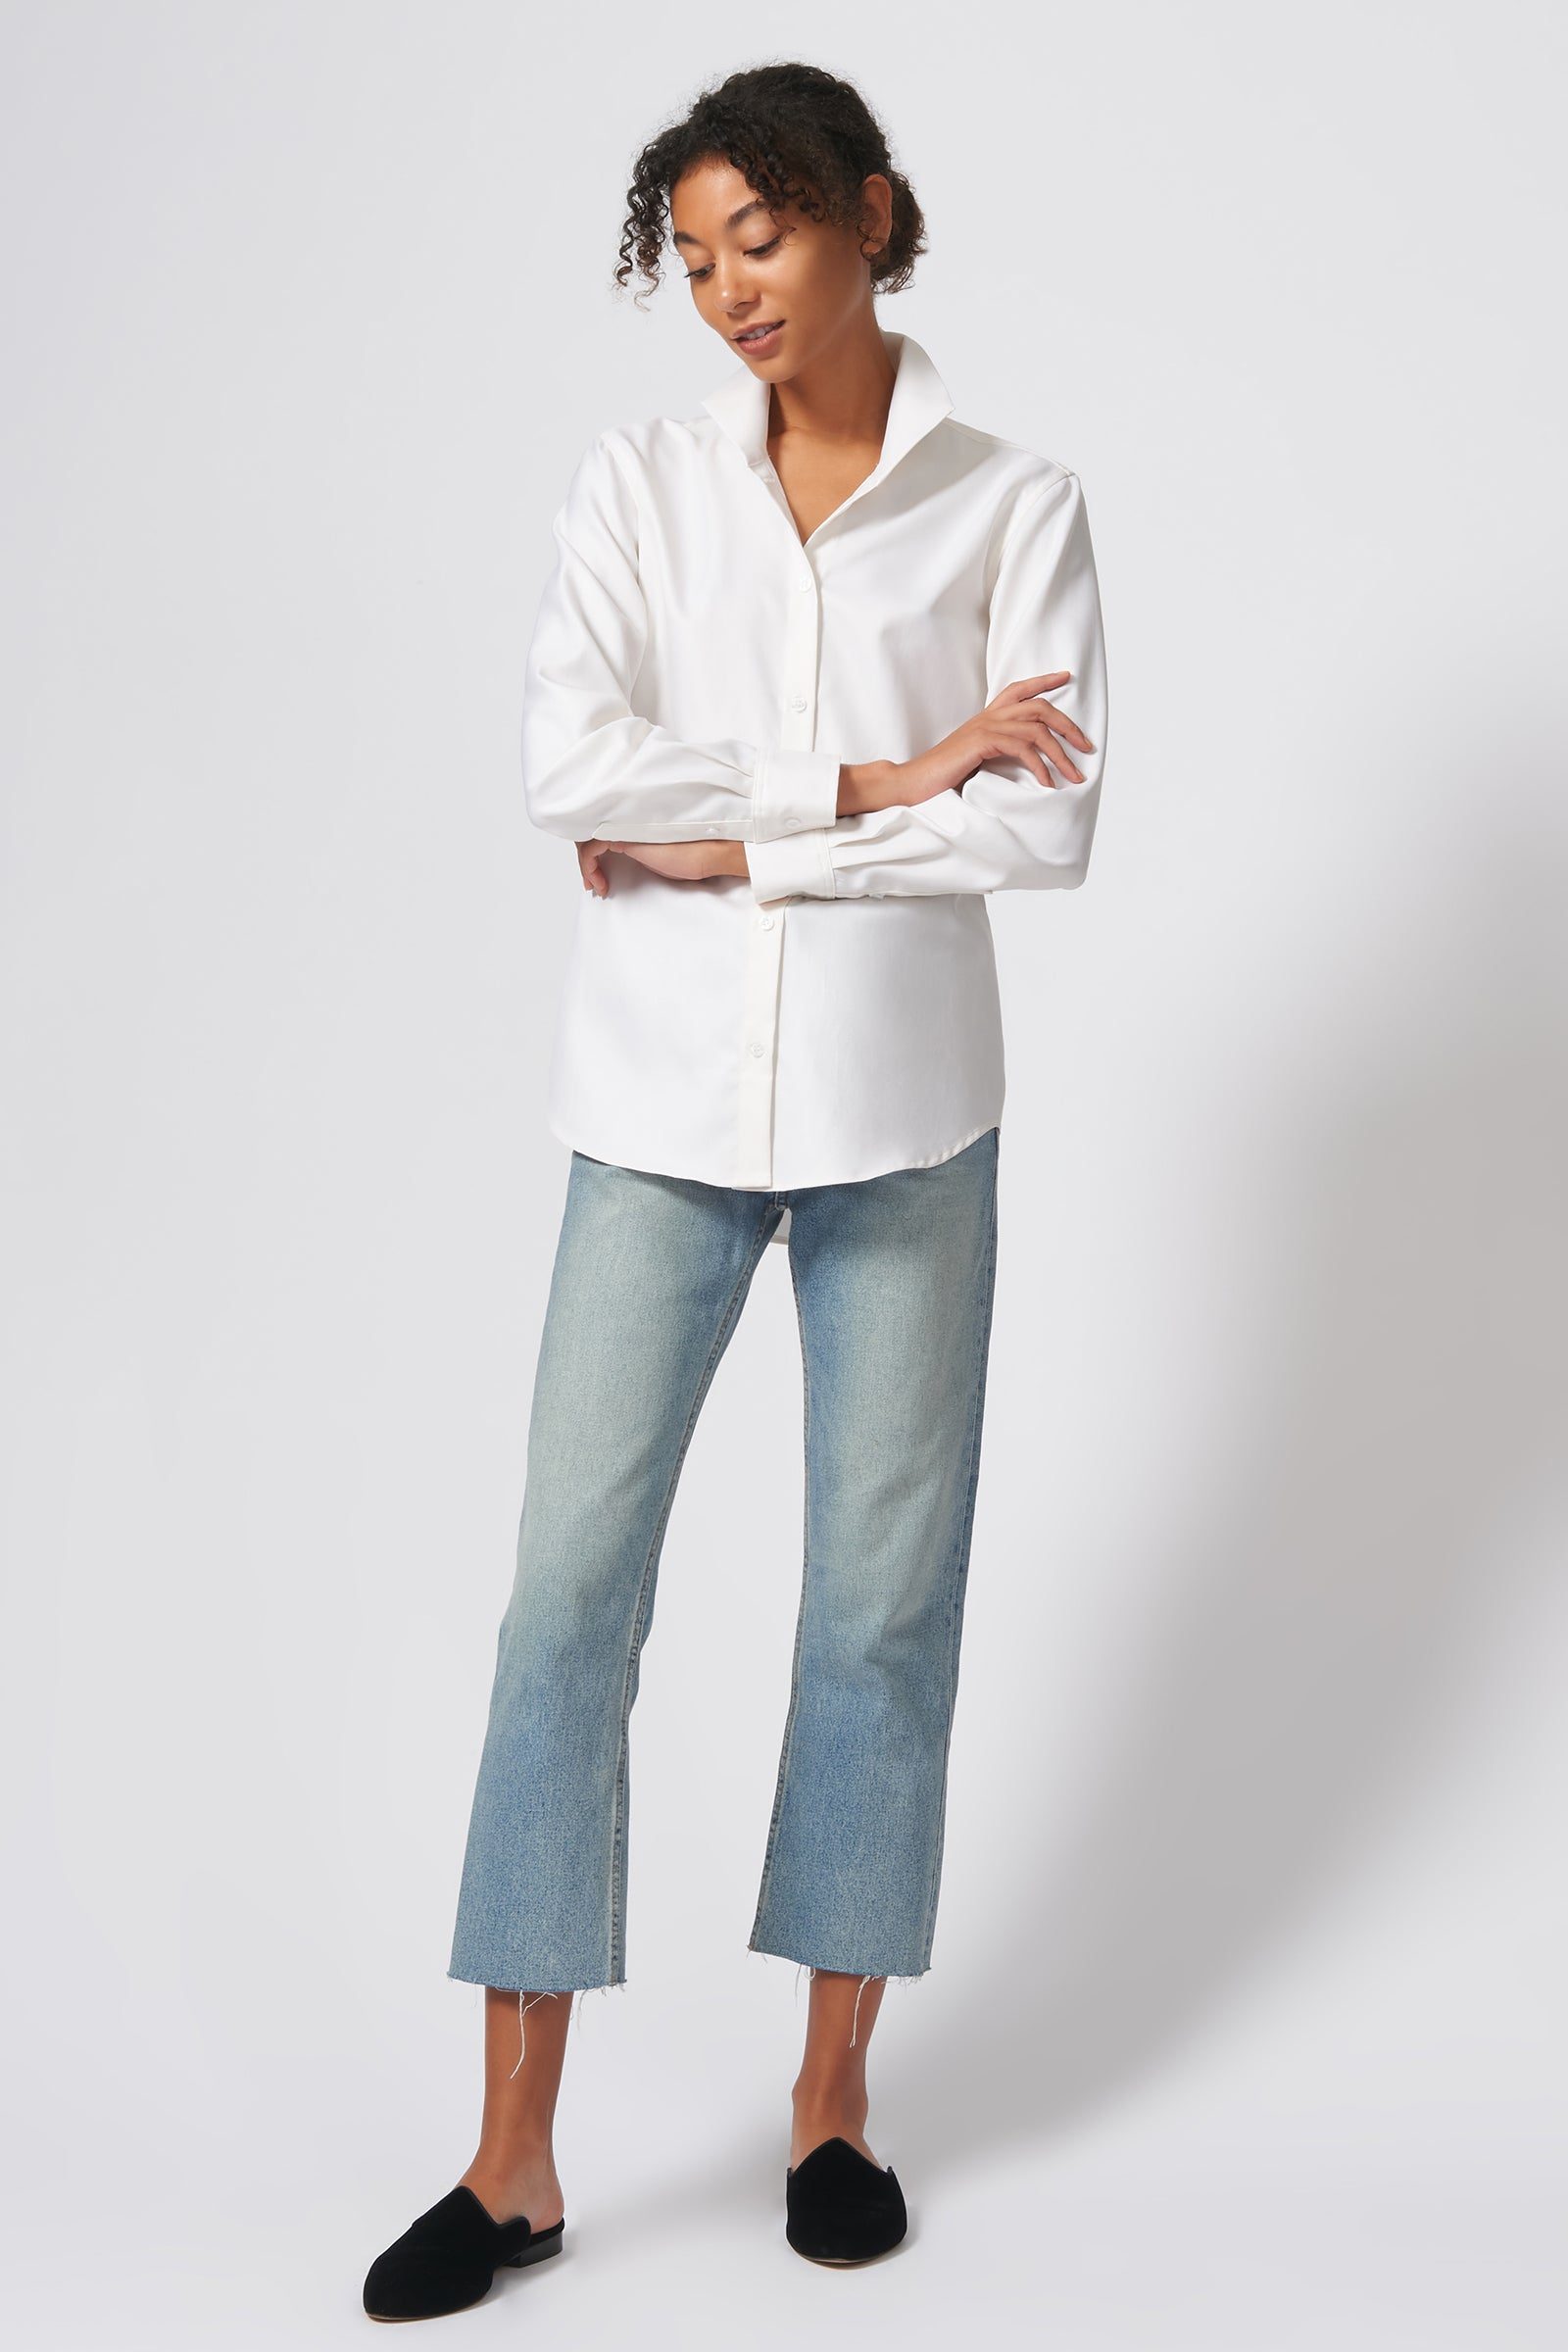 Kal Rieman Ginna Box Pleat Shirt in Ivory Fine Herringbone on Model Full Front View